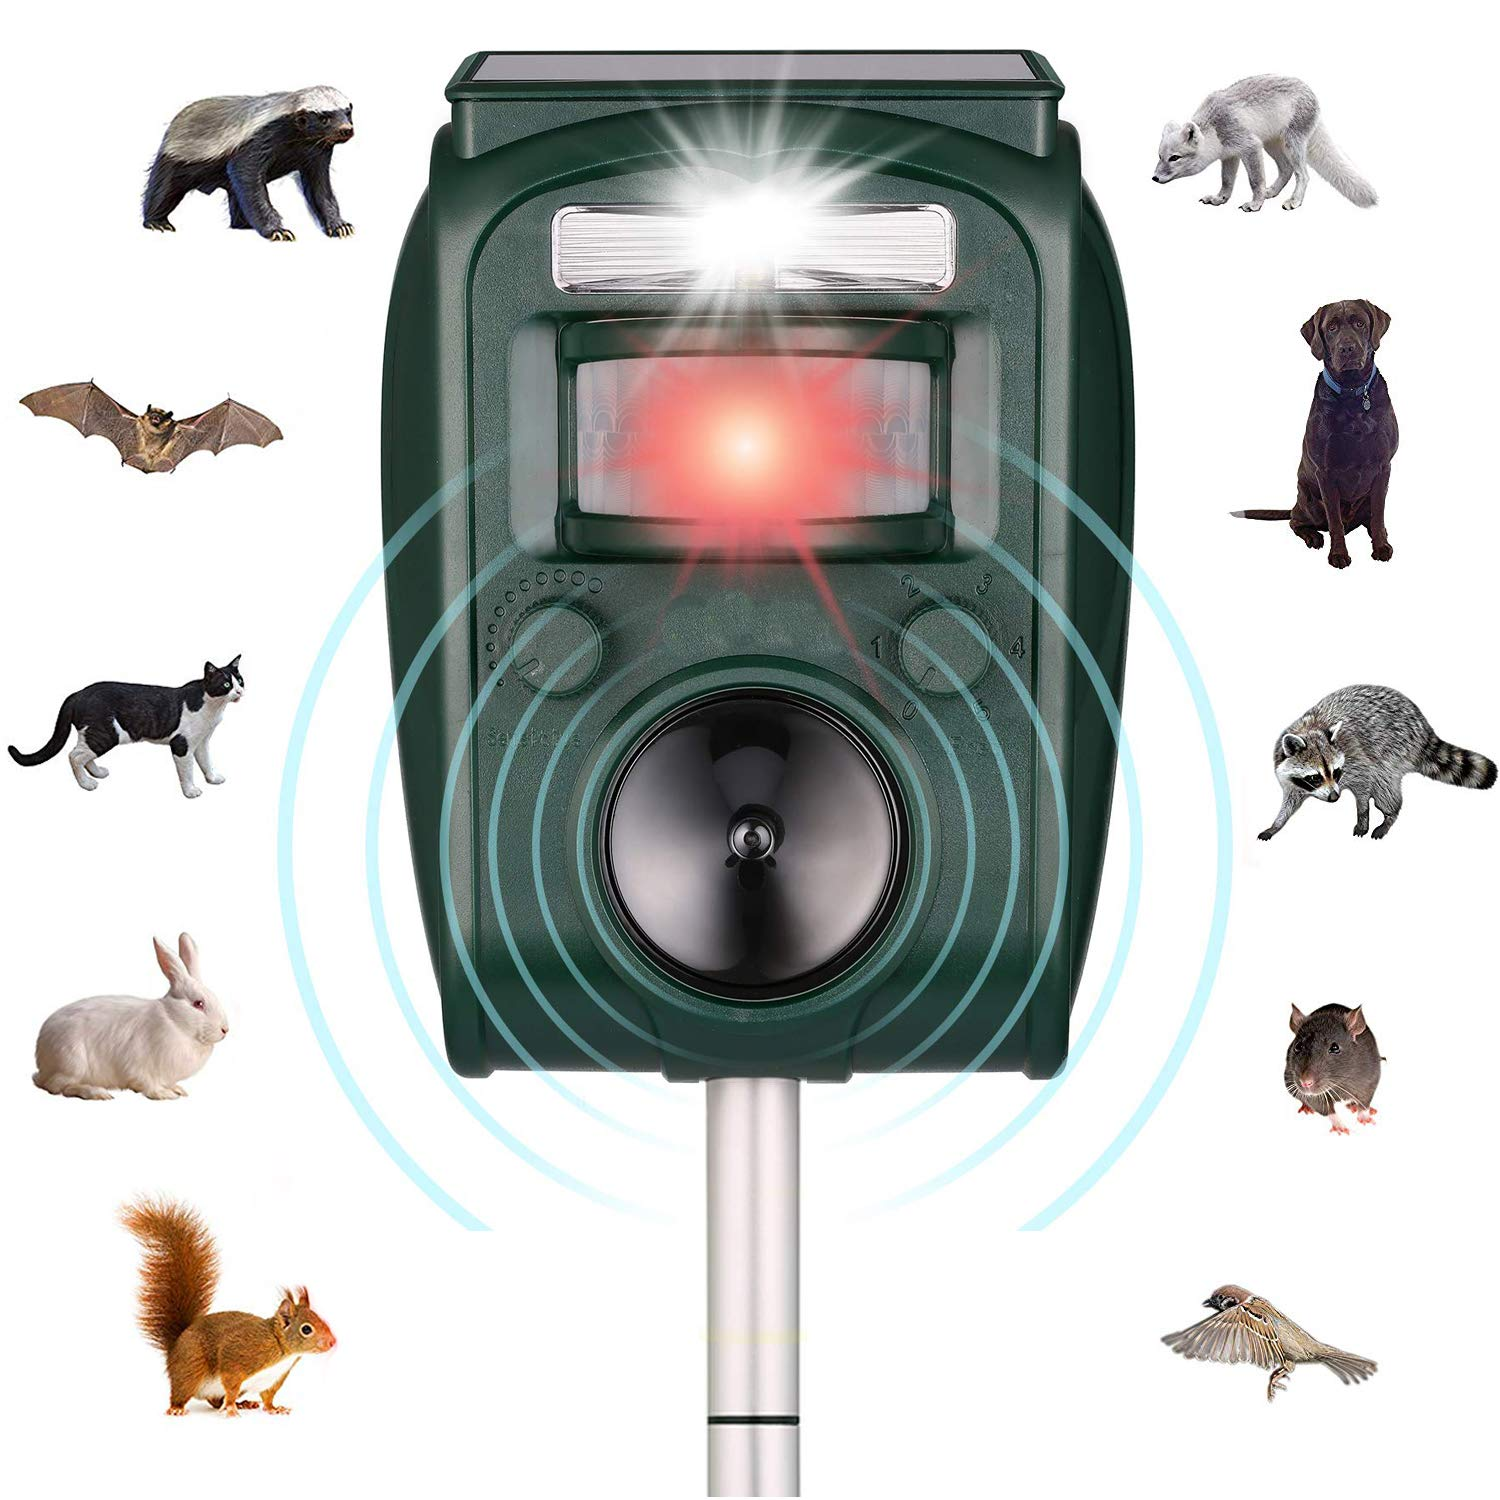 ZYYRSS Animal Repellent Ultrasonic Outdoor Solar Powered Waterproof with Ultrasonic Sound,Motion Sensor and Flashing Light for Fox,Cat,Dog,Deer,Squirrels,Raccoon & More product image